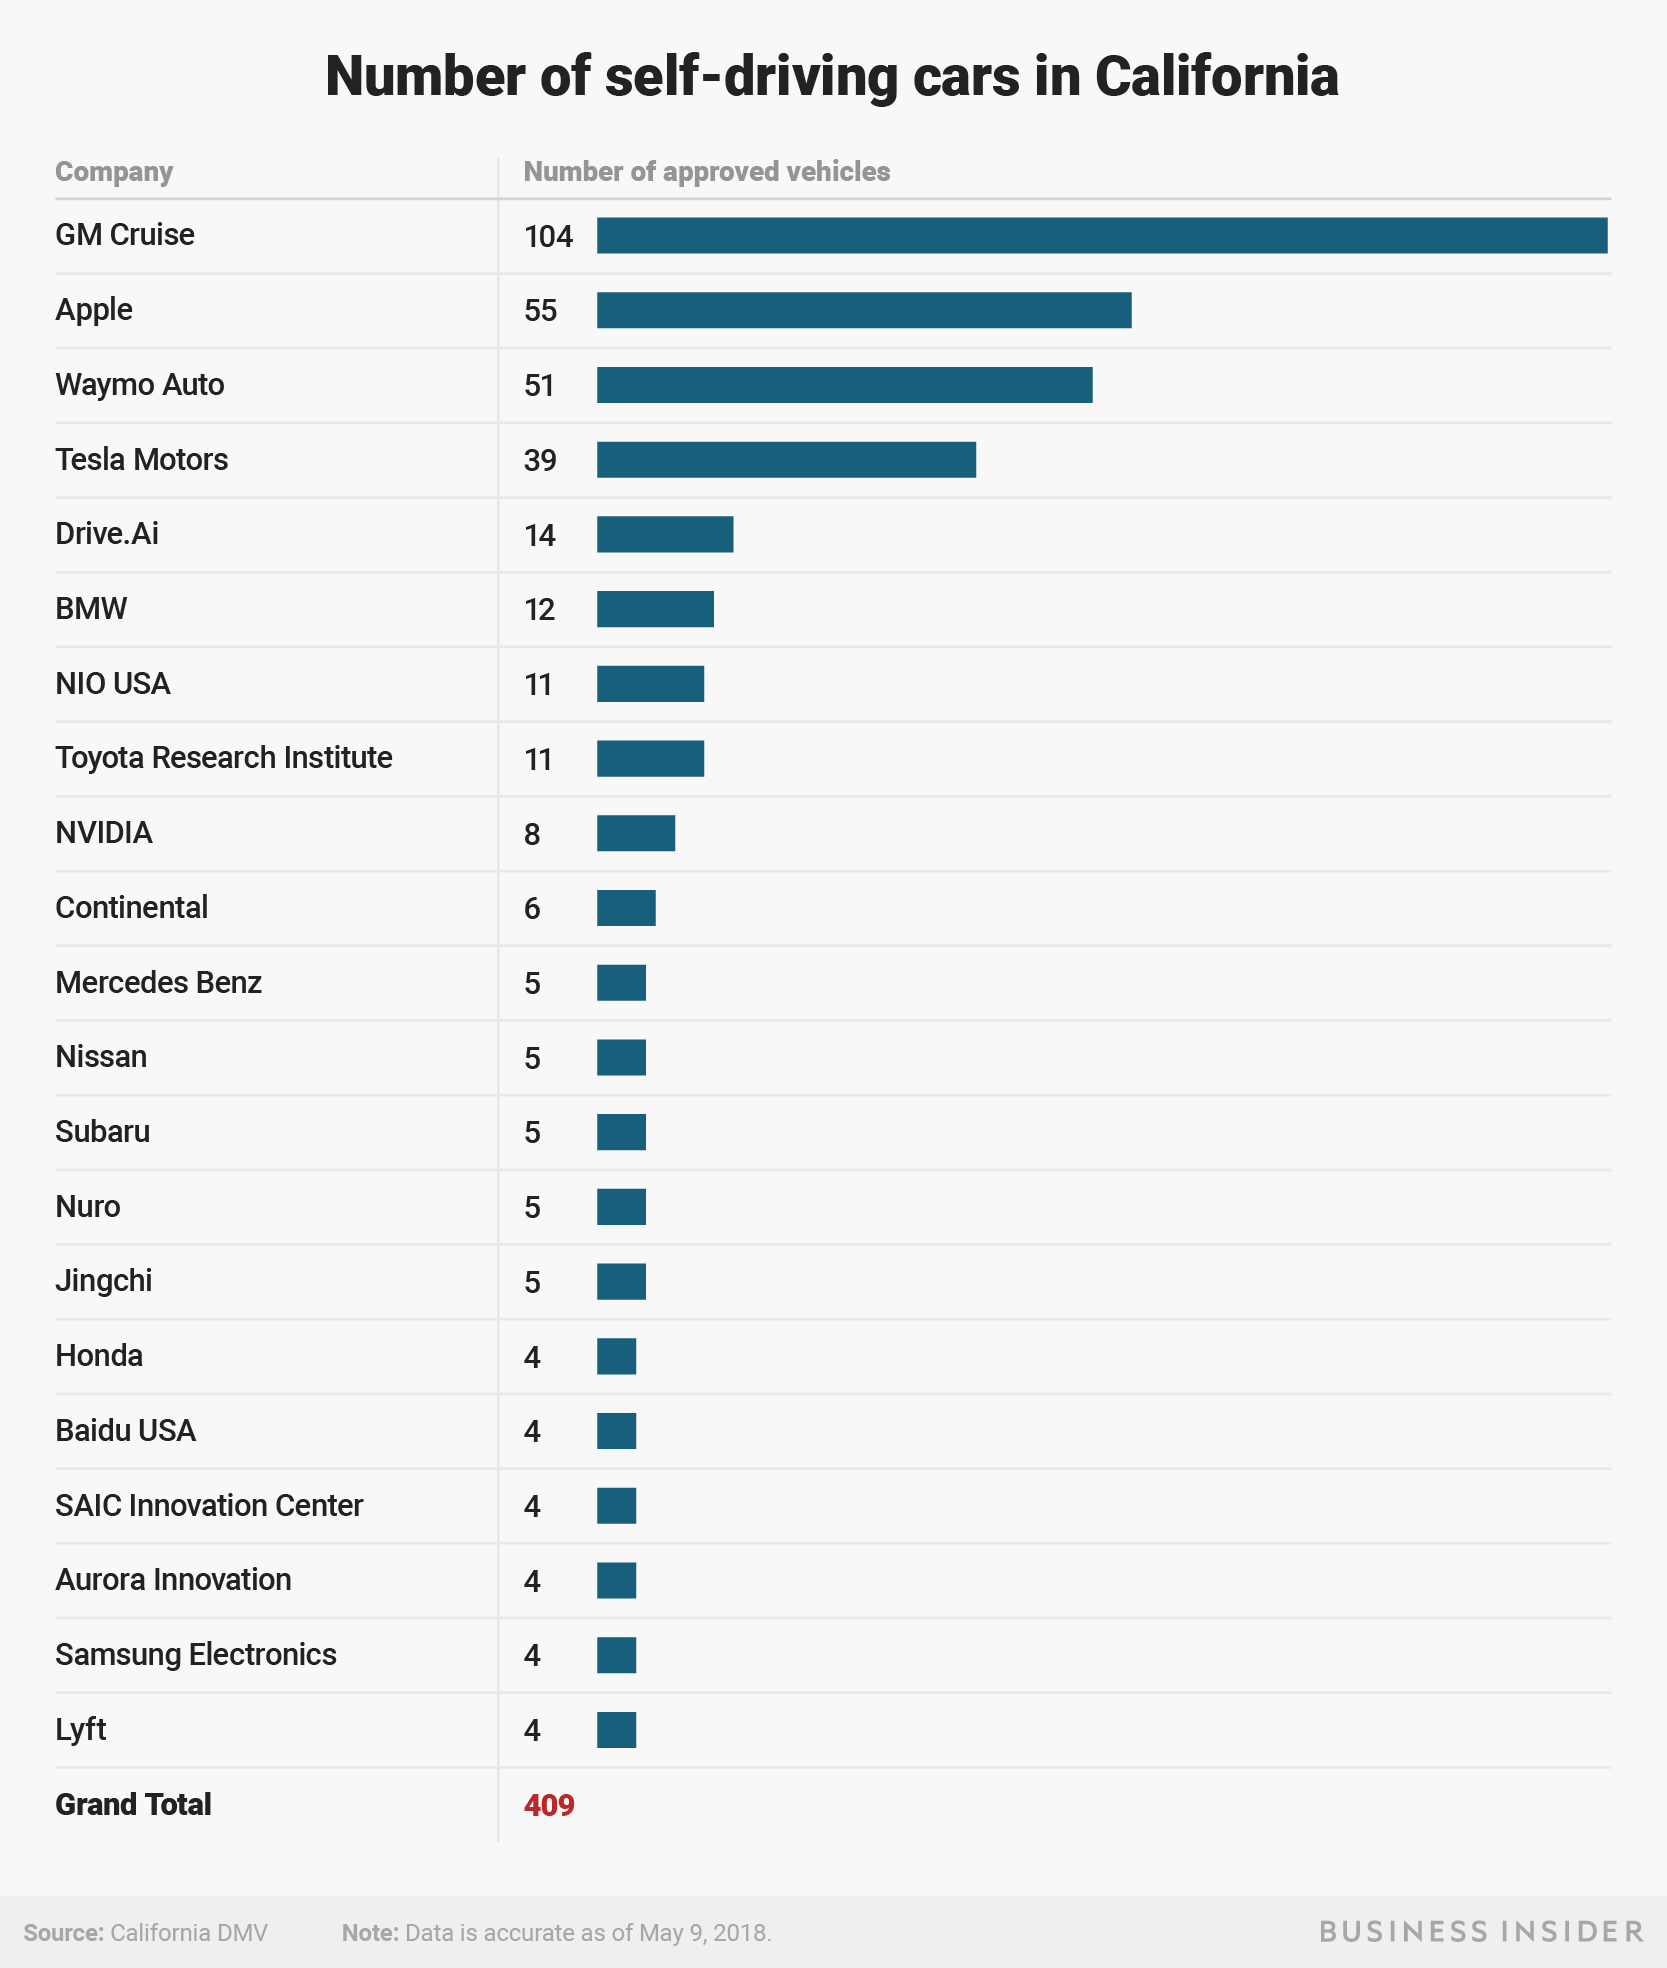 Apple Has The Second Largest Fleet Of Self Driving Cars In